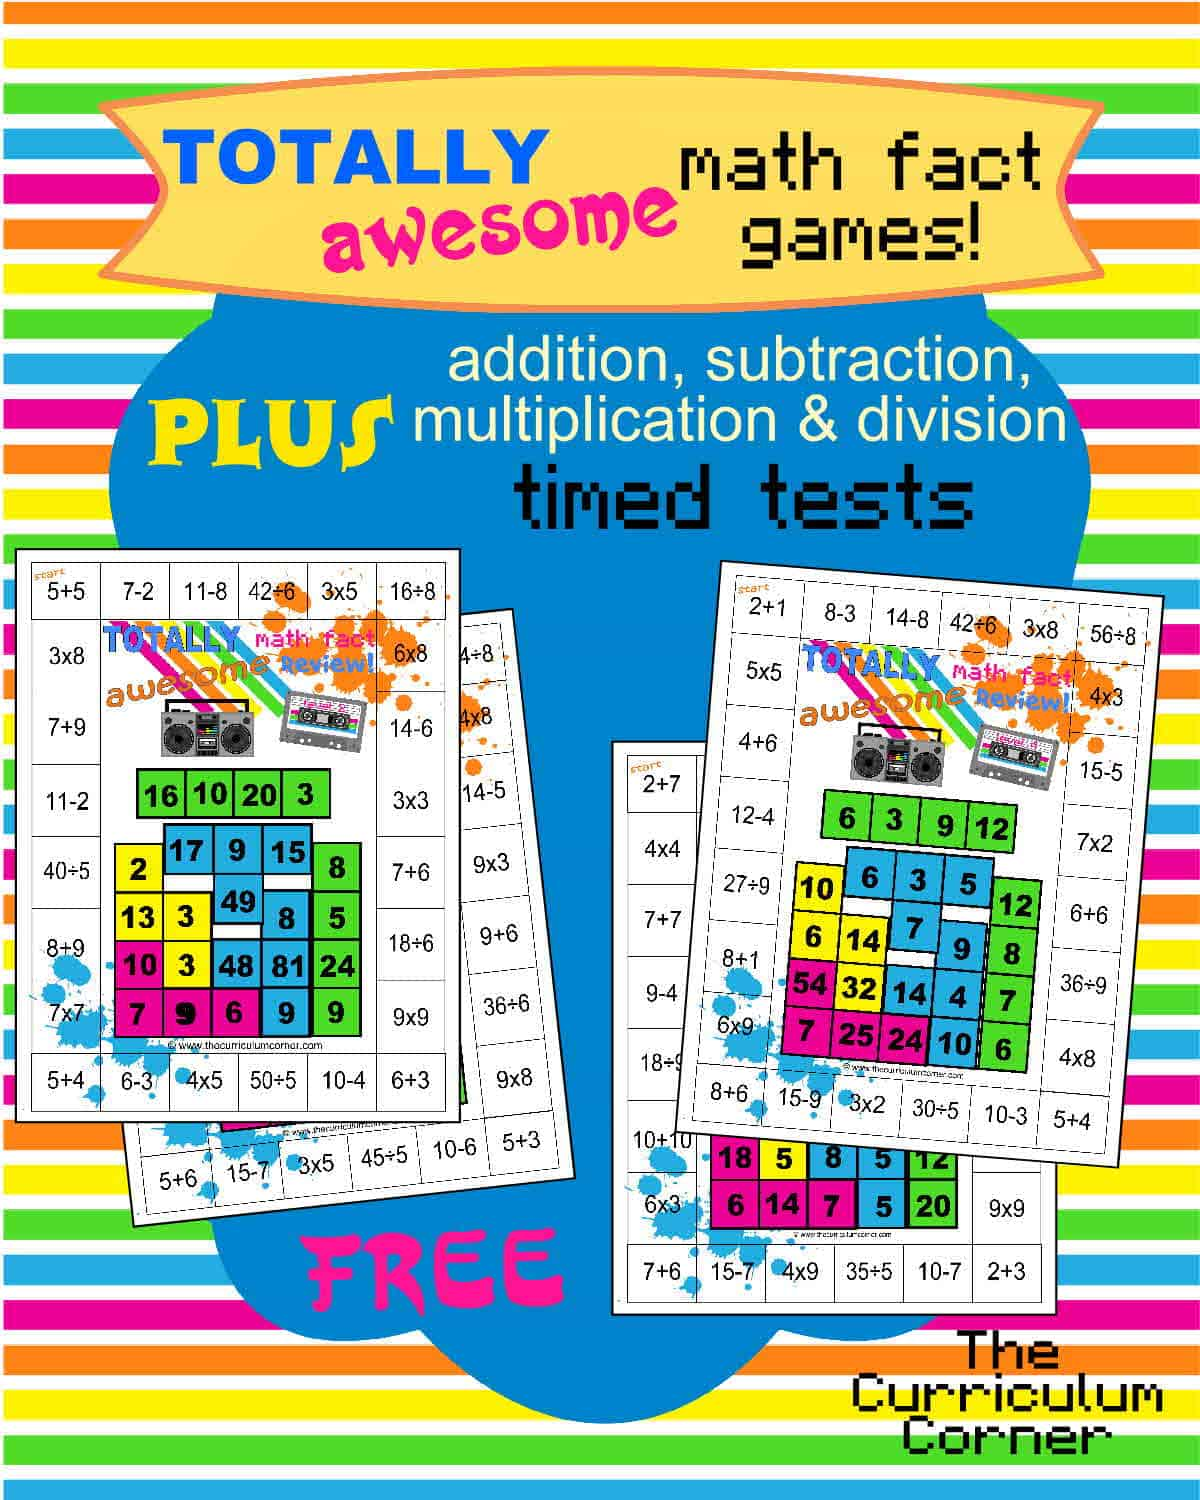 80s Themed Mixed Math Facts Games PLUS +,-,x, & ÷ Timed Tests